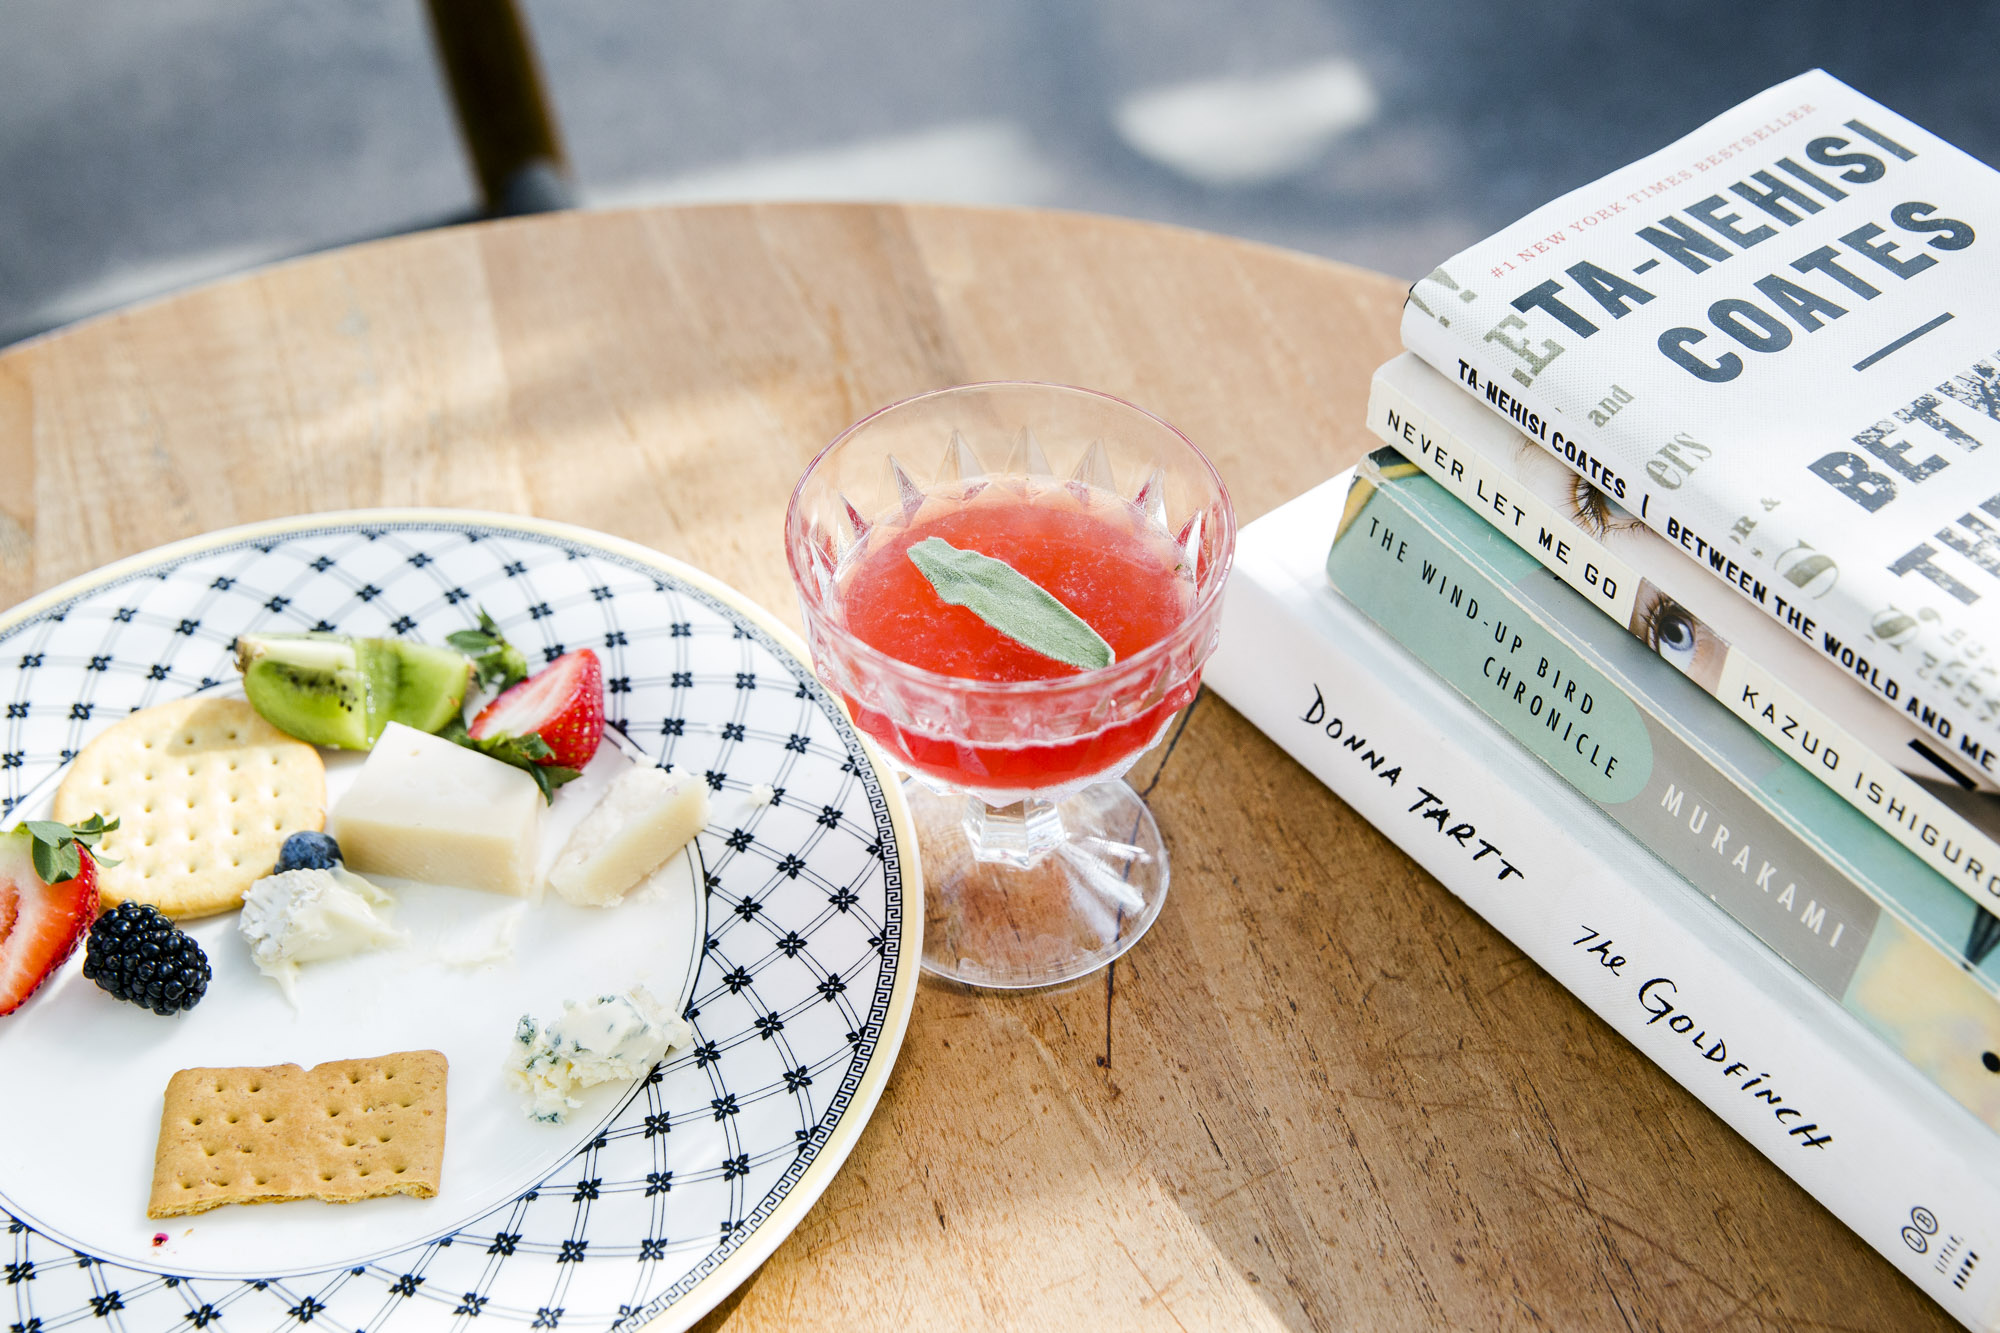 Commissary at the Line Hotel for quiet reading and summer snacks.